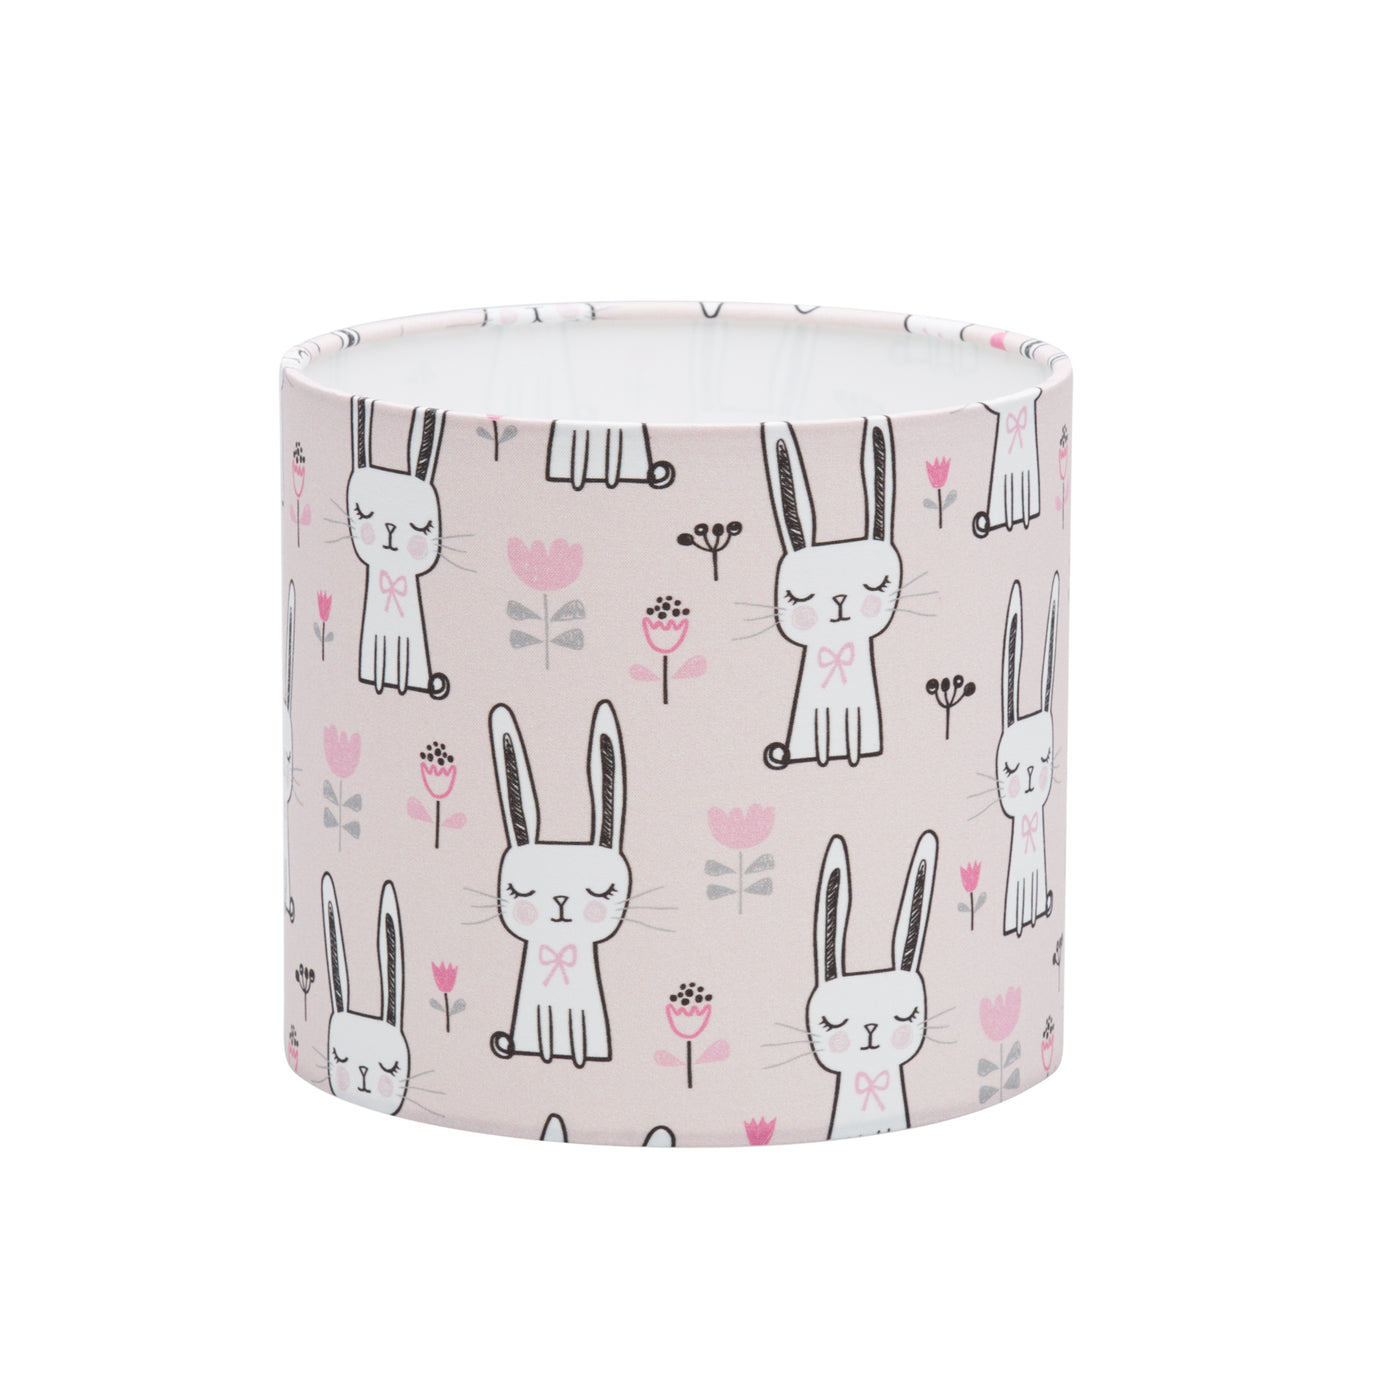 Sleepy Bunnies Lampshade